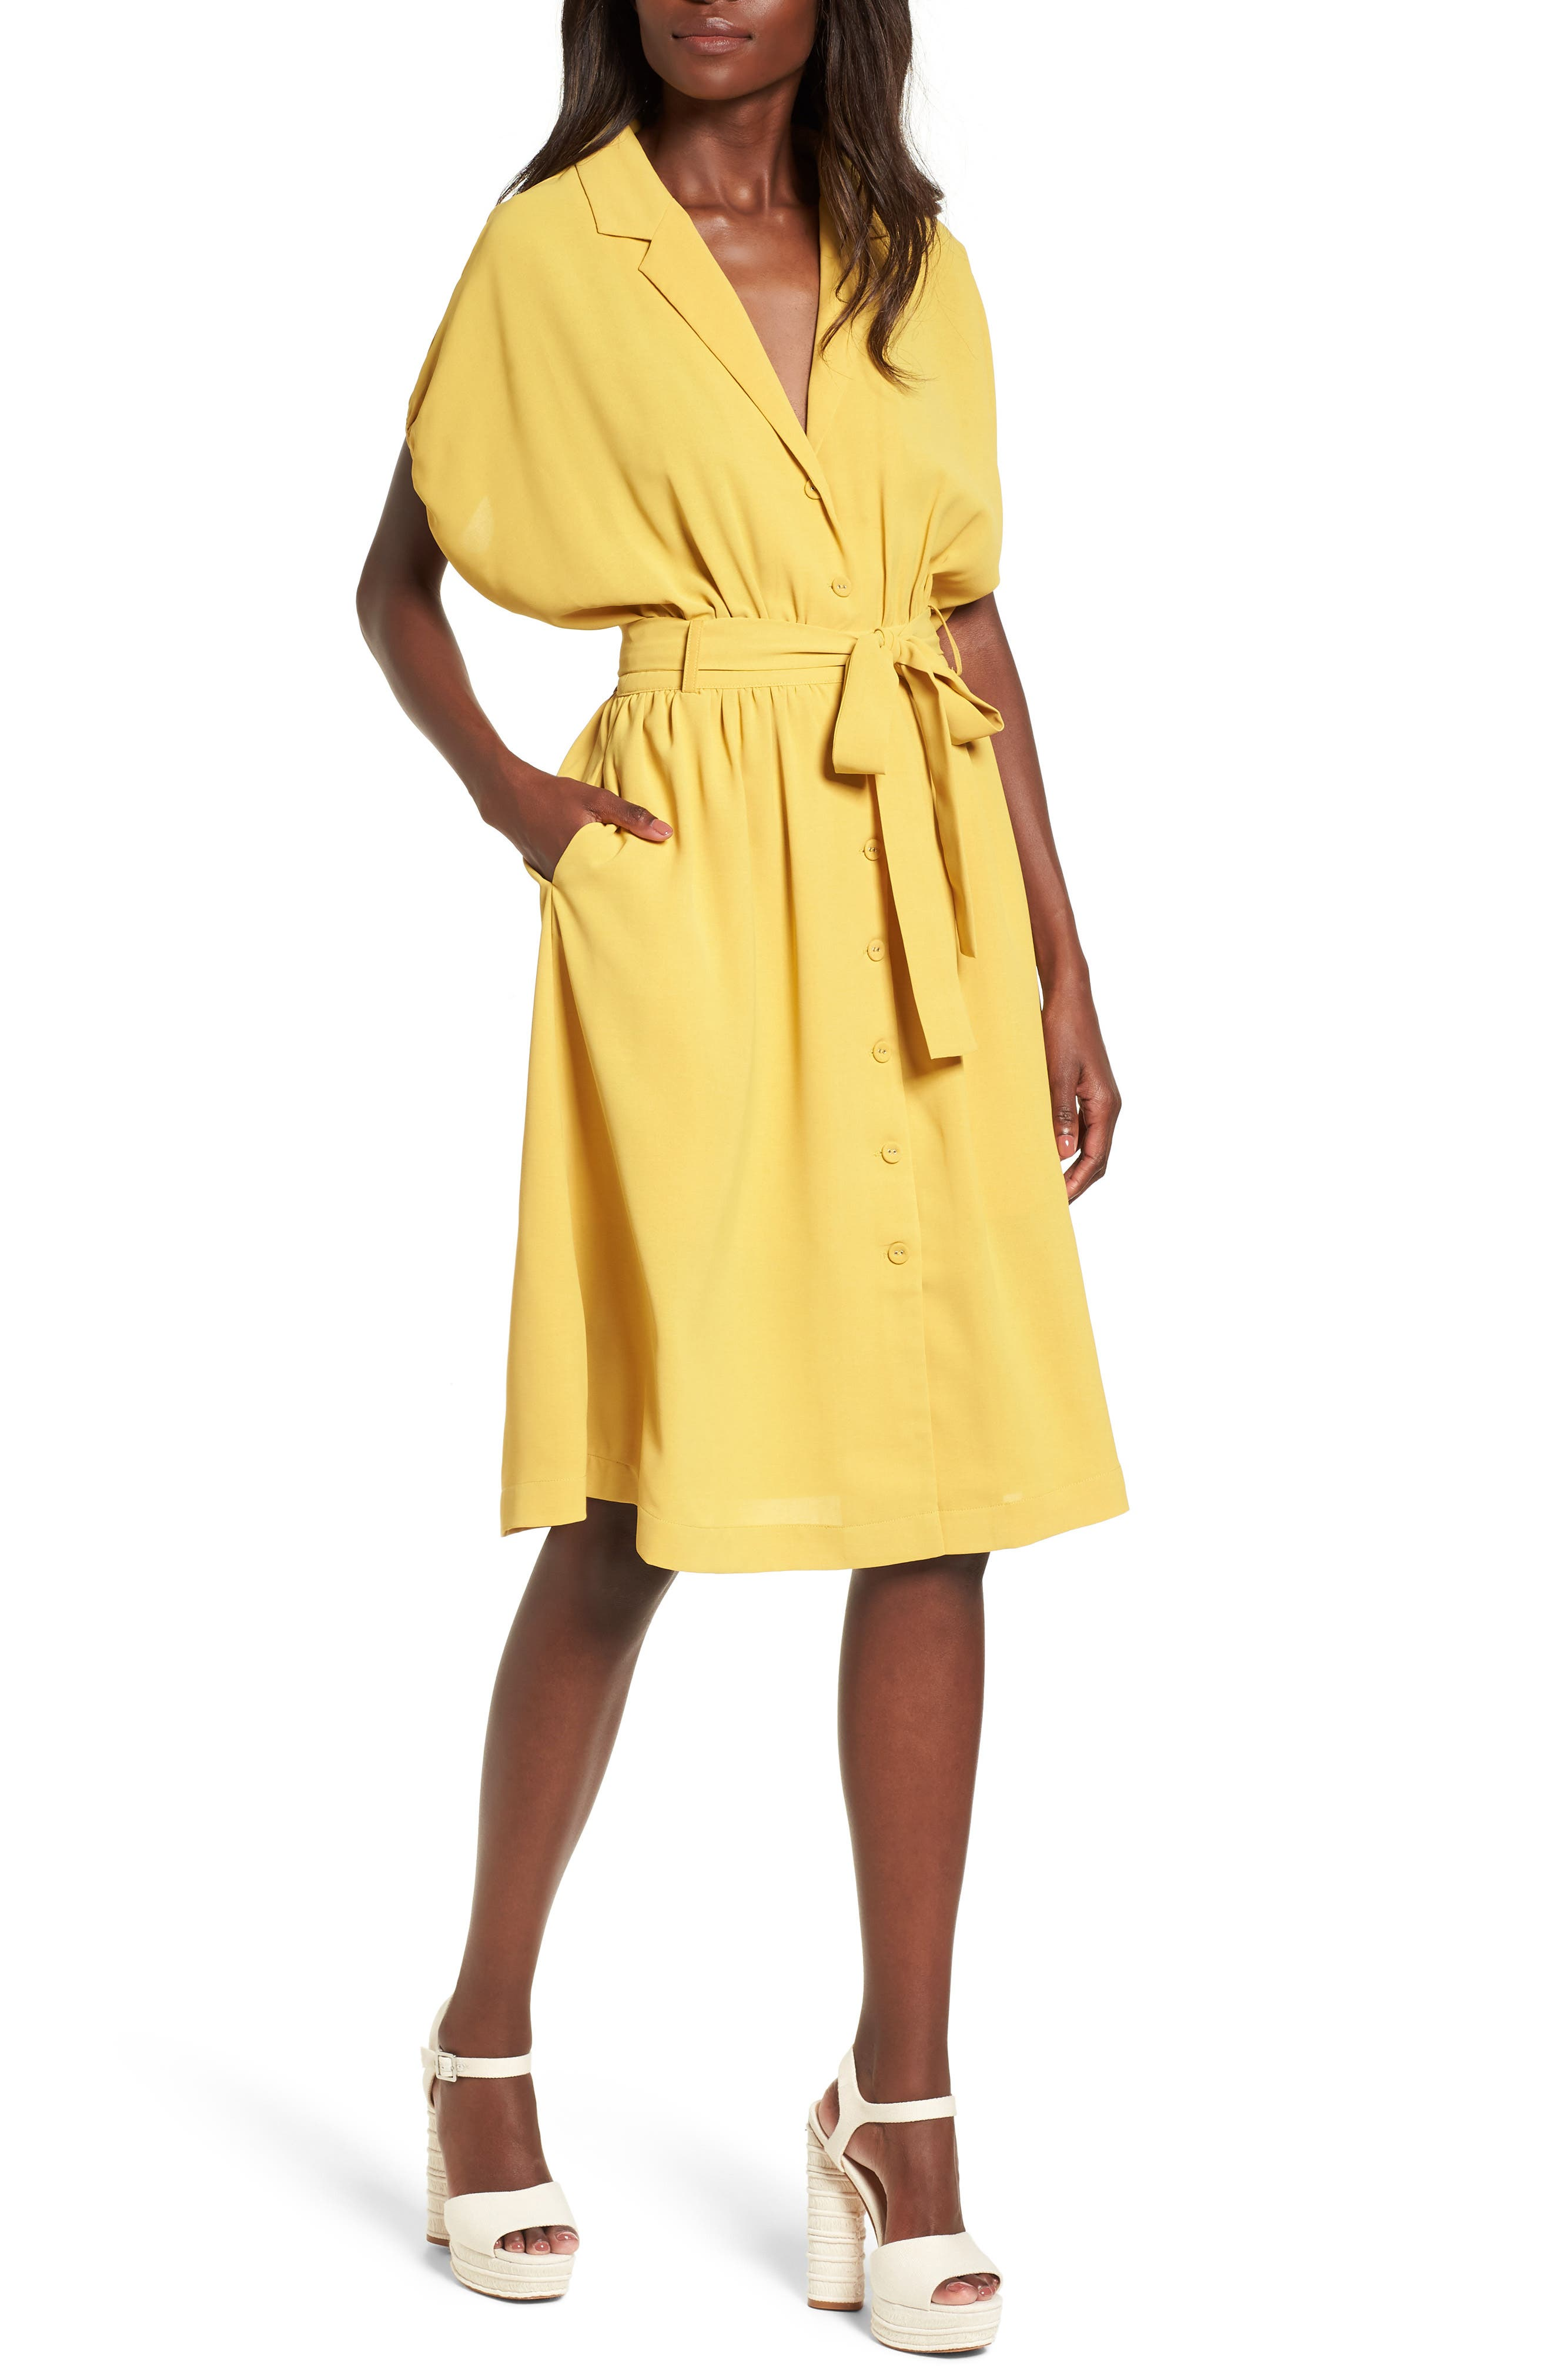 Chriselle x J.O.A. Cocoon Sleeve Dress,                             Main thumbnail 1, color,                             Roman Gold